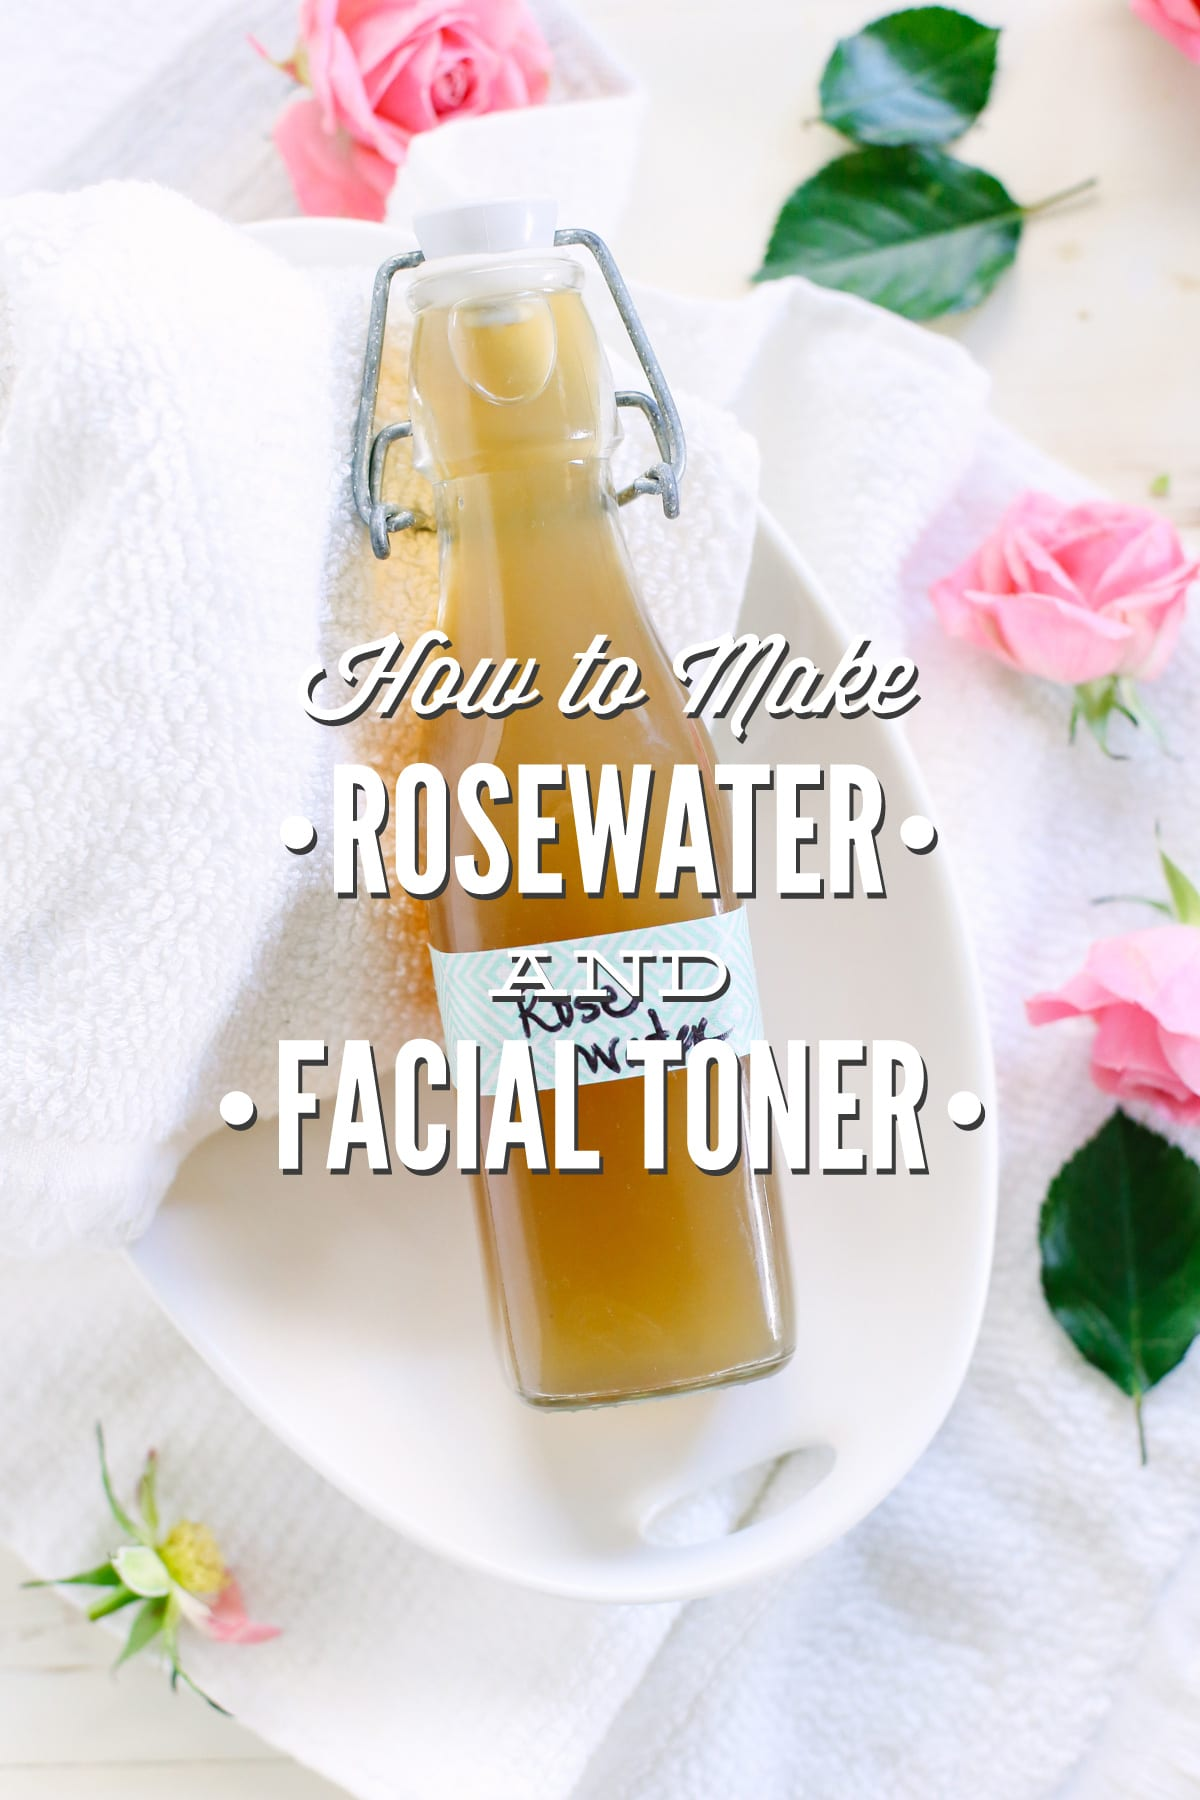 How to make rosewater and rosewater facial toner live simply solutioingenieria Image collections